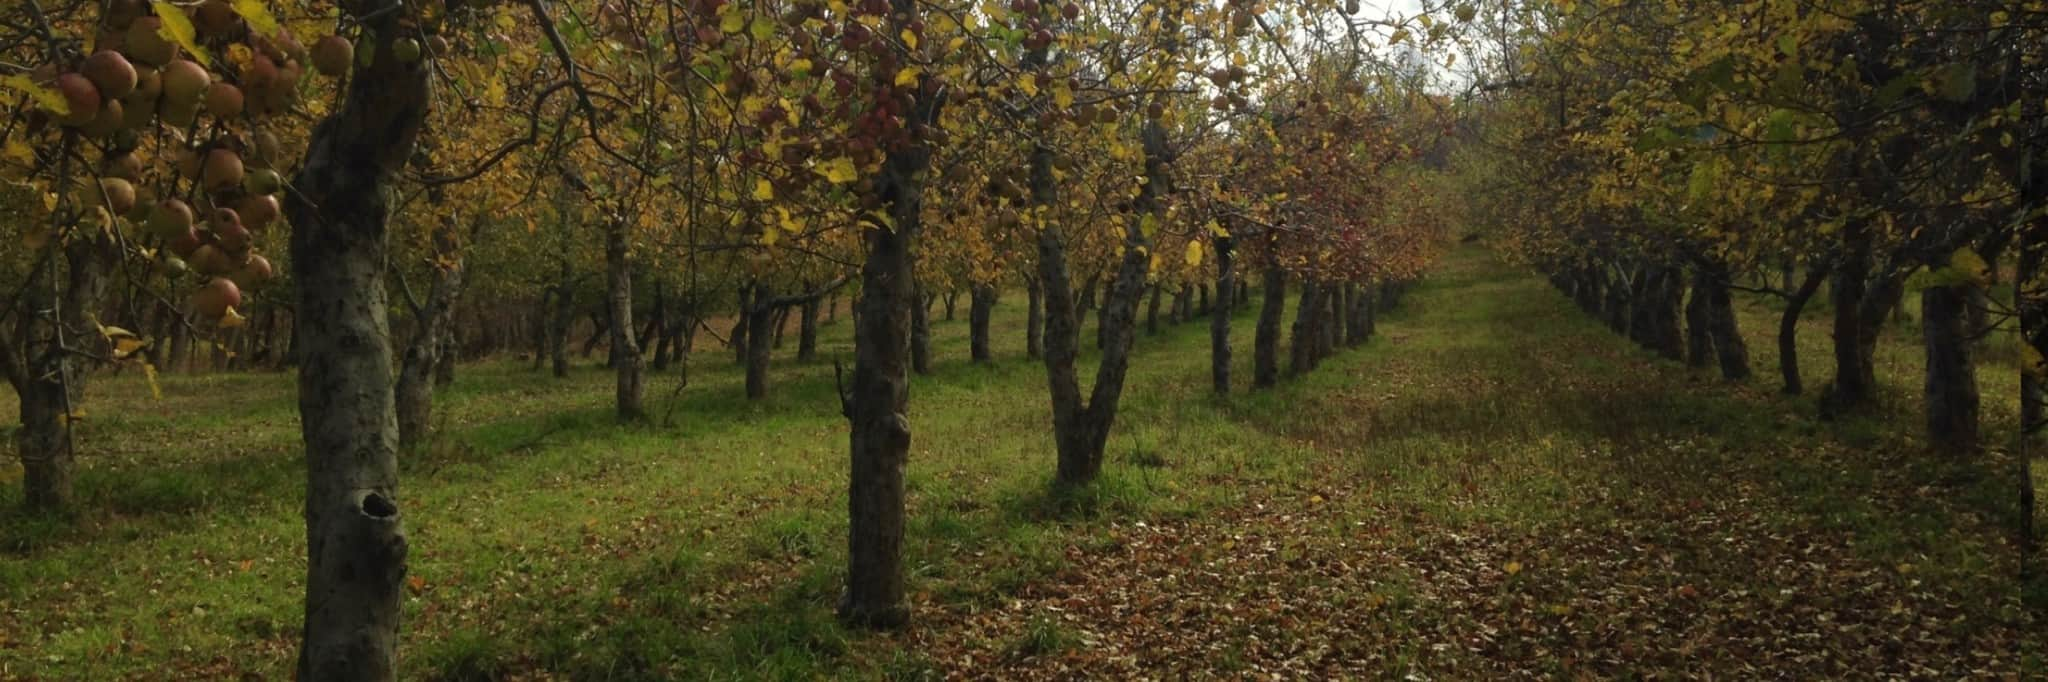 Orchard at Eve's Cidery